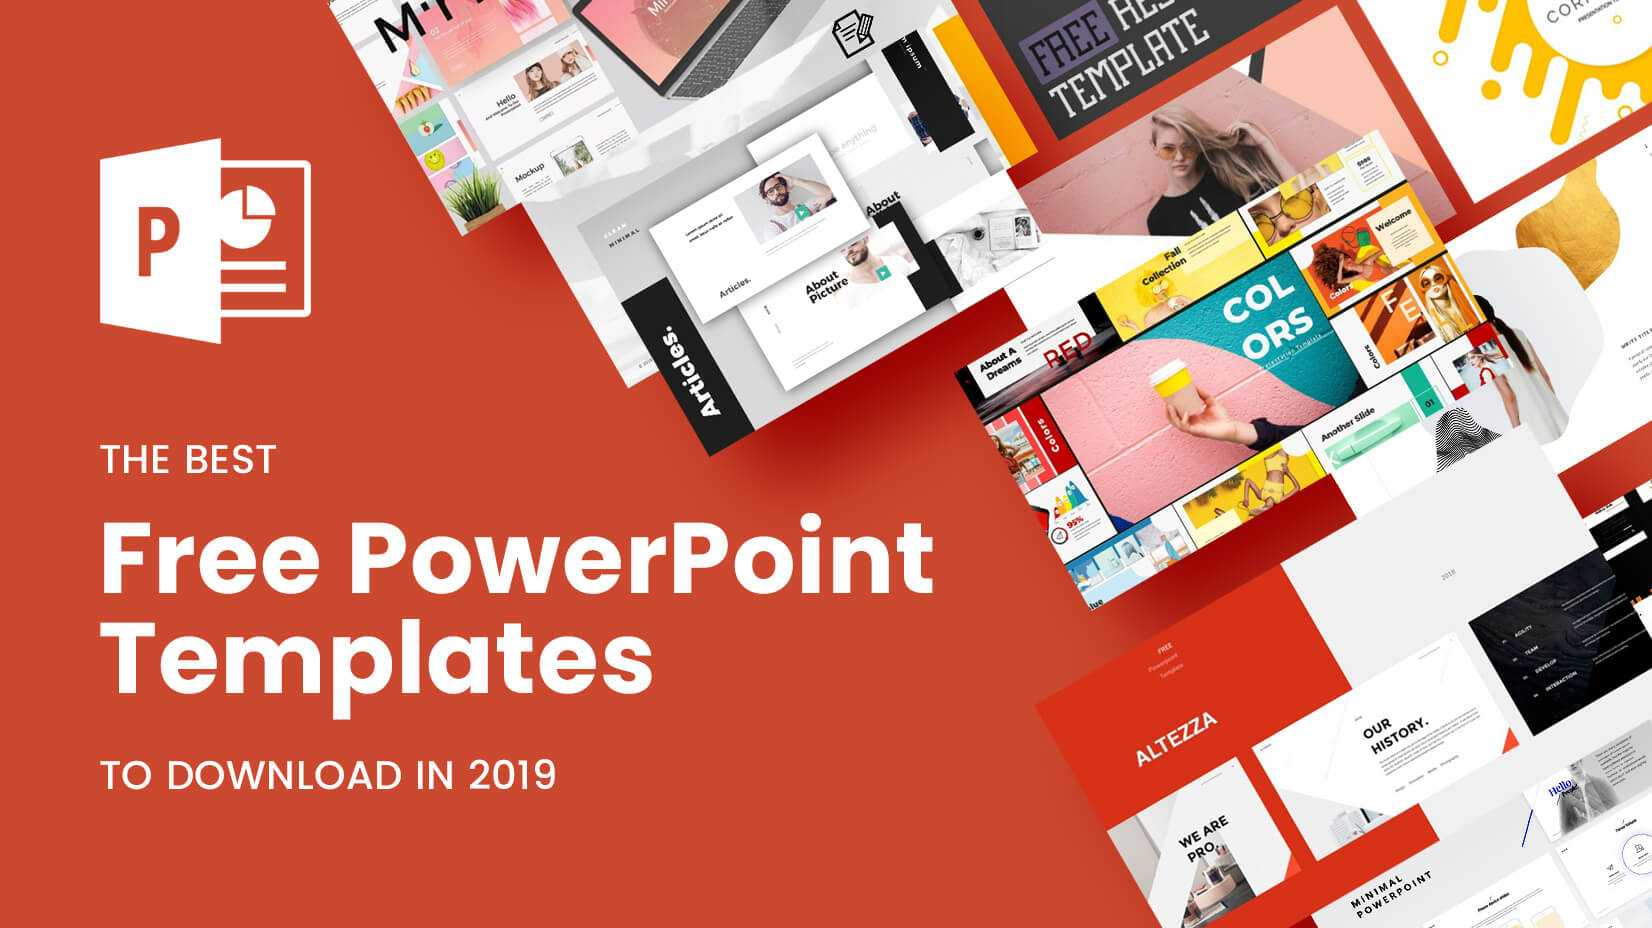 The Best Free Powerpoint Templates To Download In 2019 Throughout Powerpoint Sample Templates Free Download